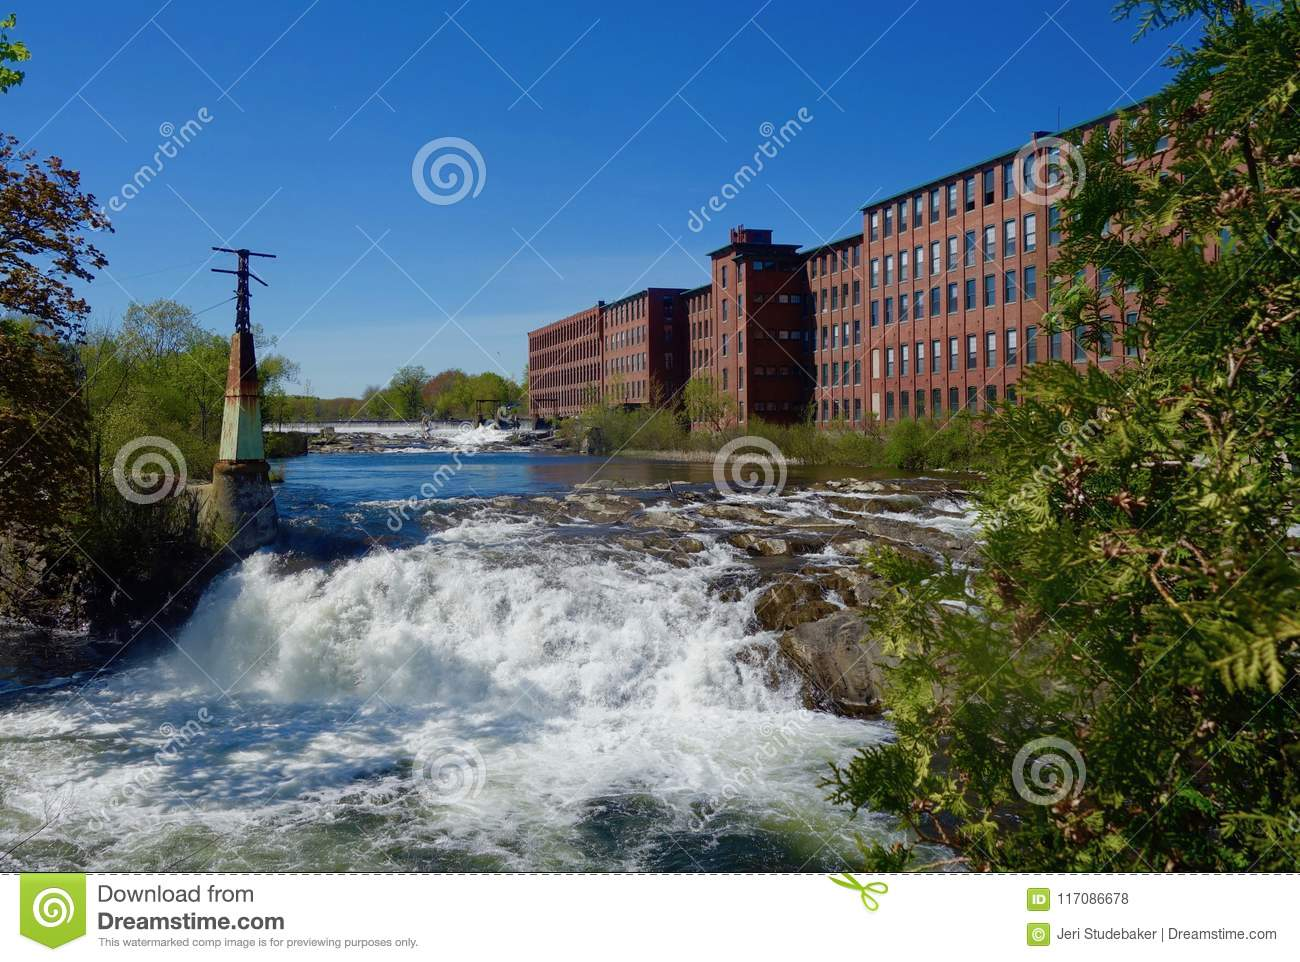 Old Brick Mill Building, Waterfall, River, On Bright Sunny ...